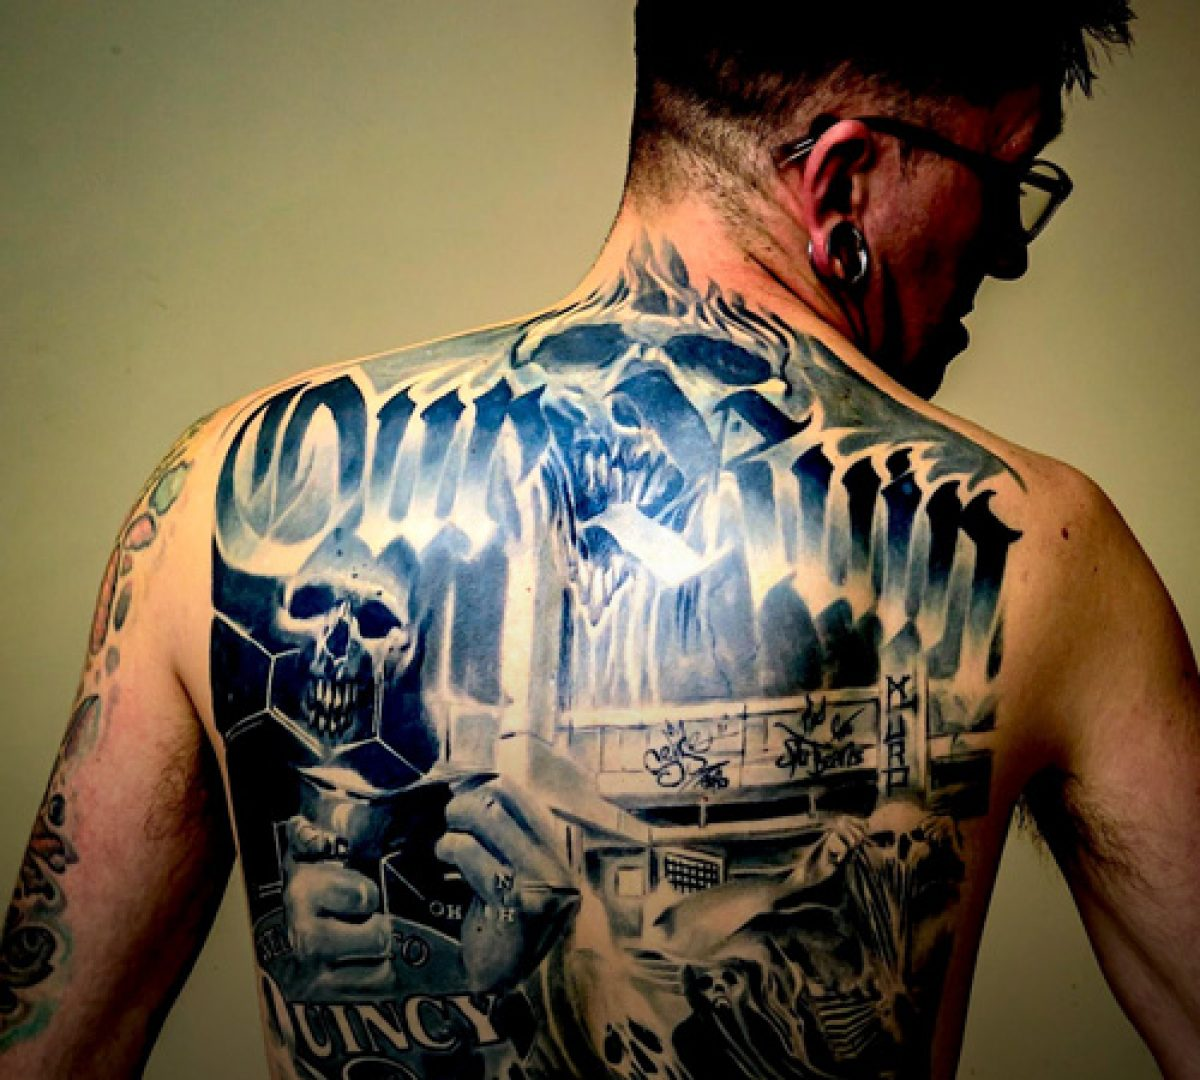 Ink Flesh Tattoo Story Of Addiction Addiction Recovery Ebulletin